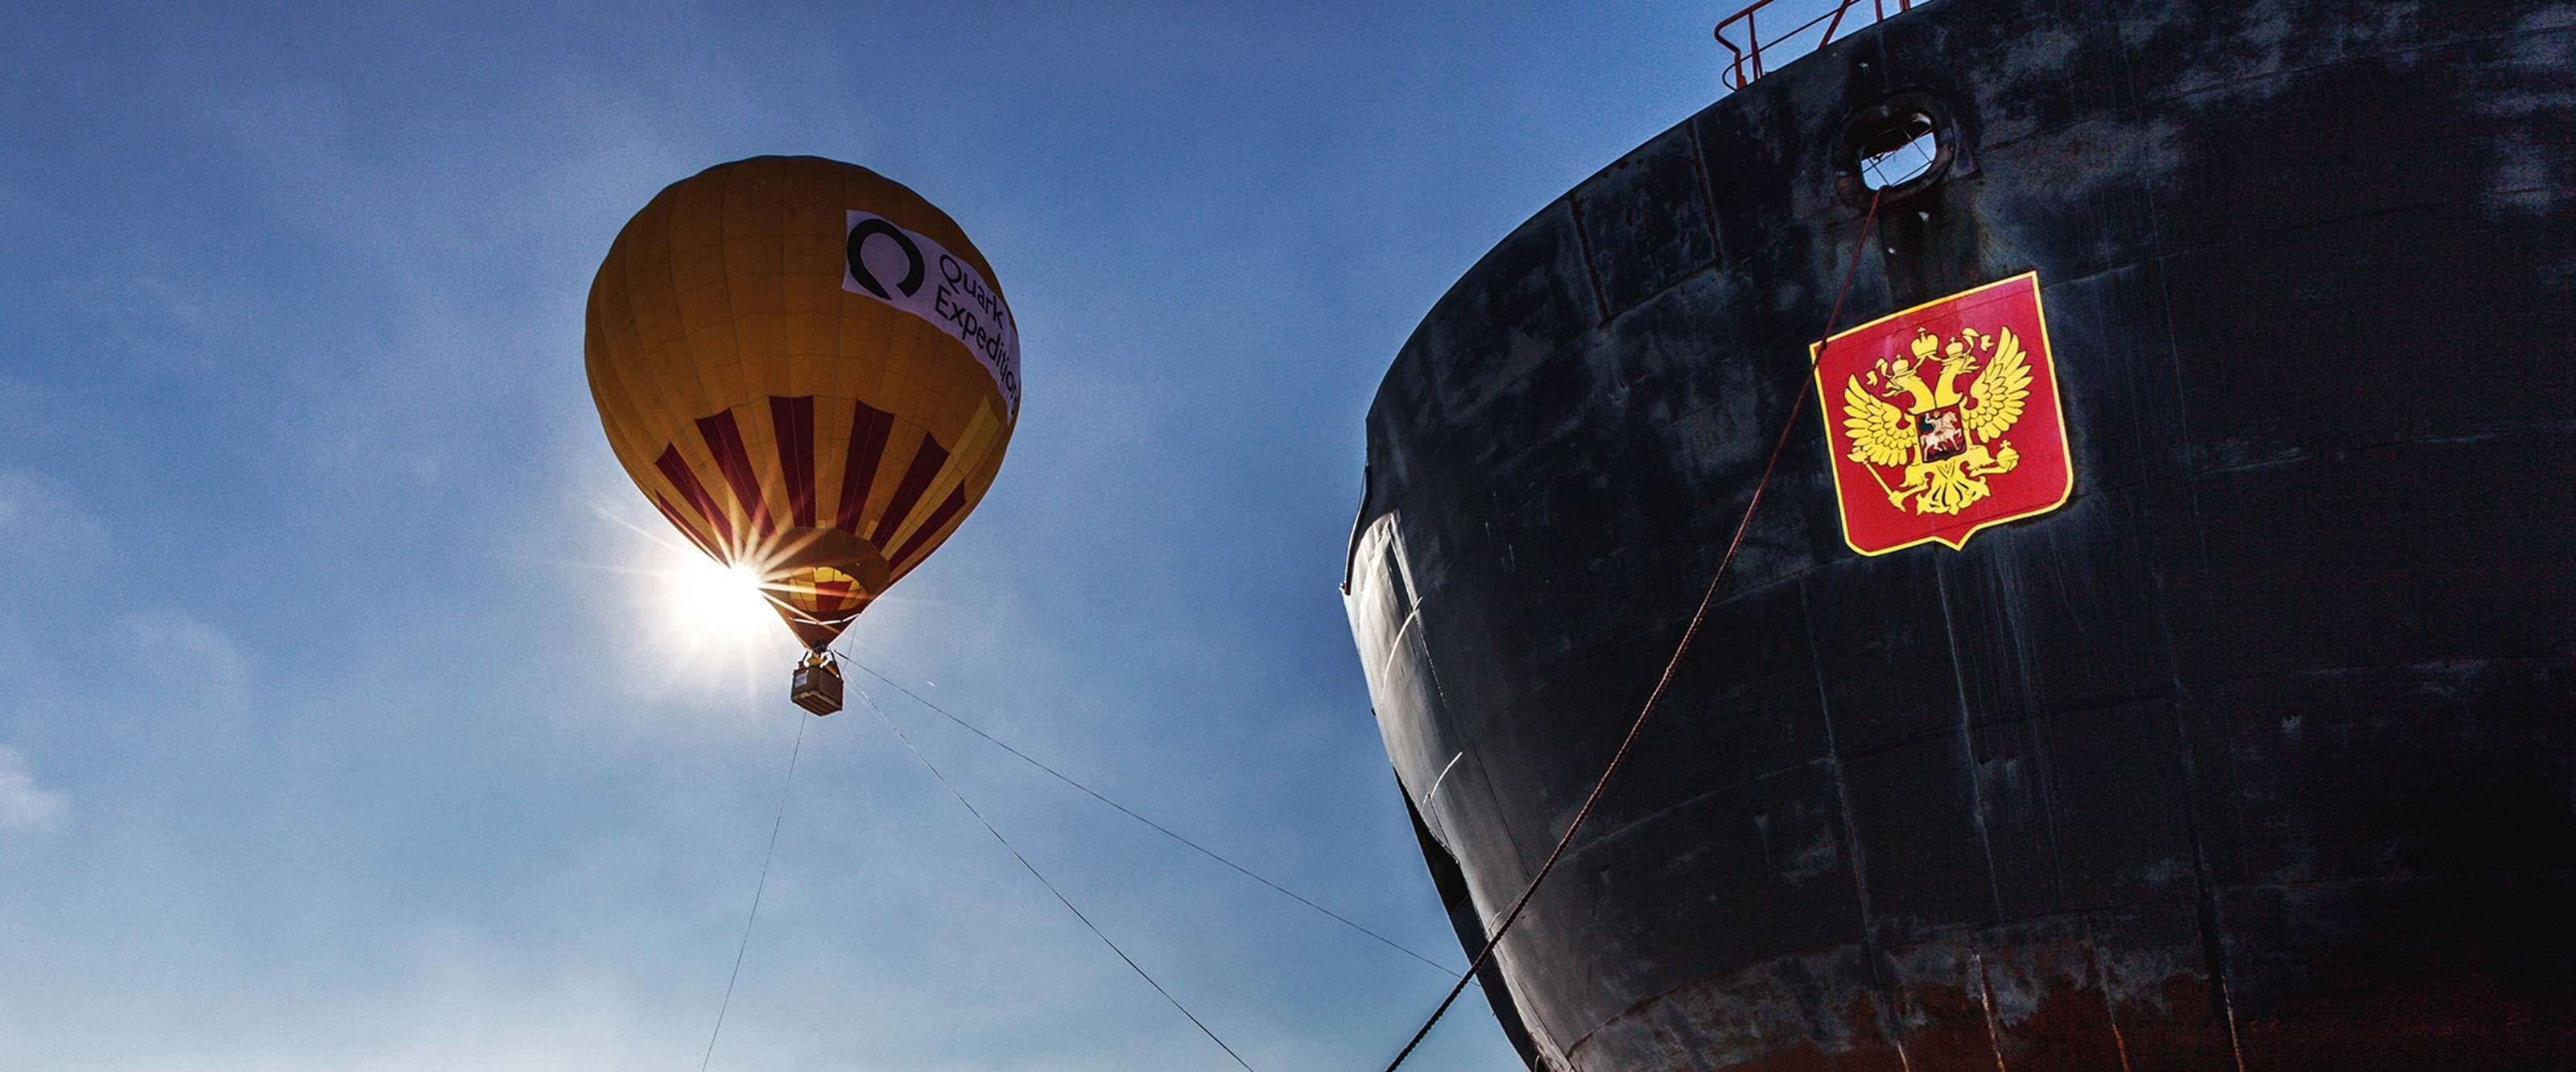 When weather permits, Quark takes you up for a breathtaking bird's eye view of 90° North in a hot-air balloon.